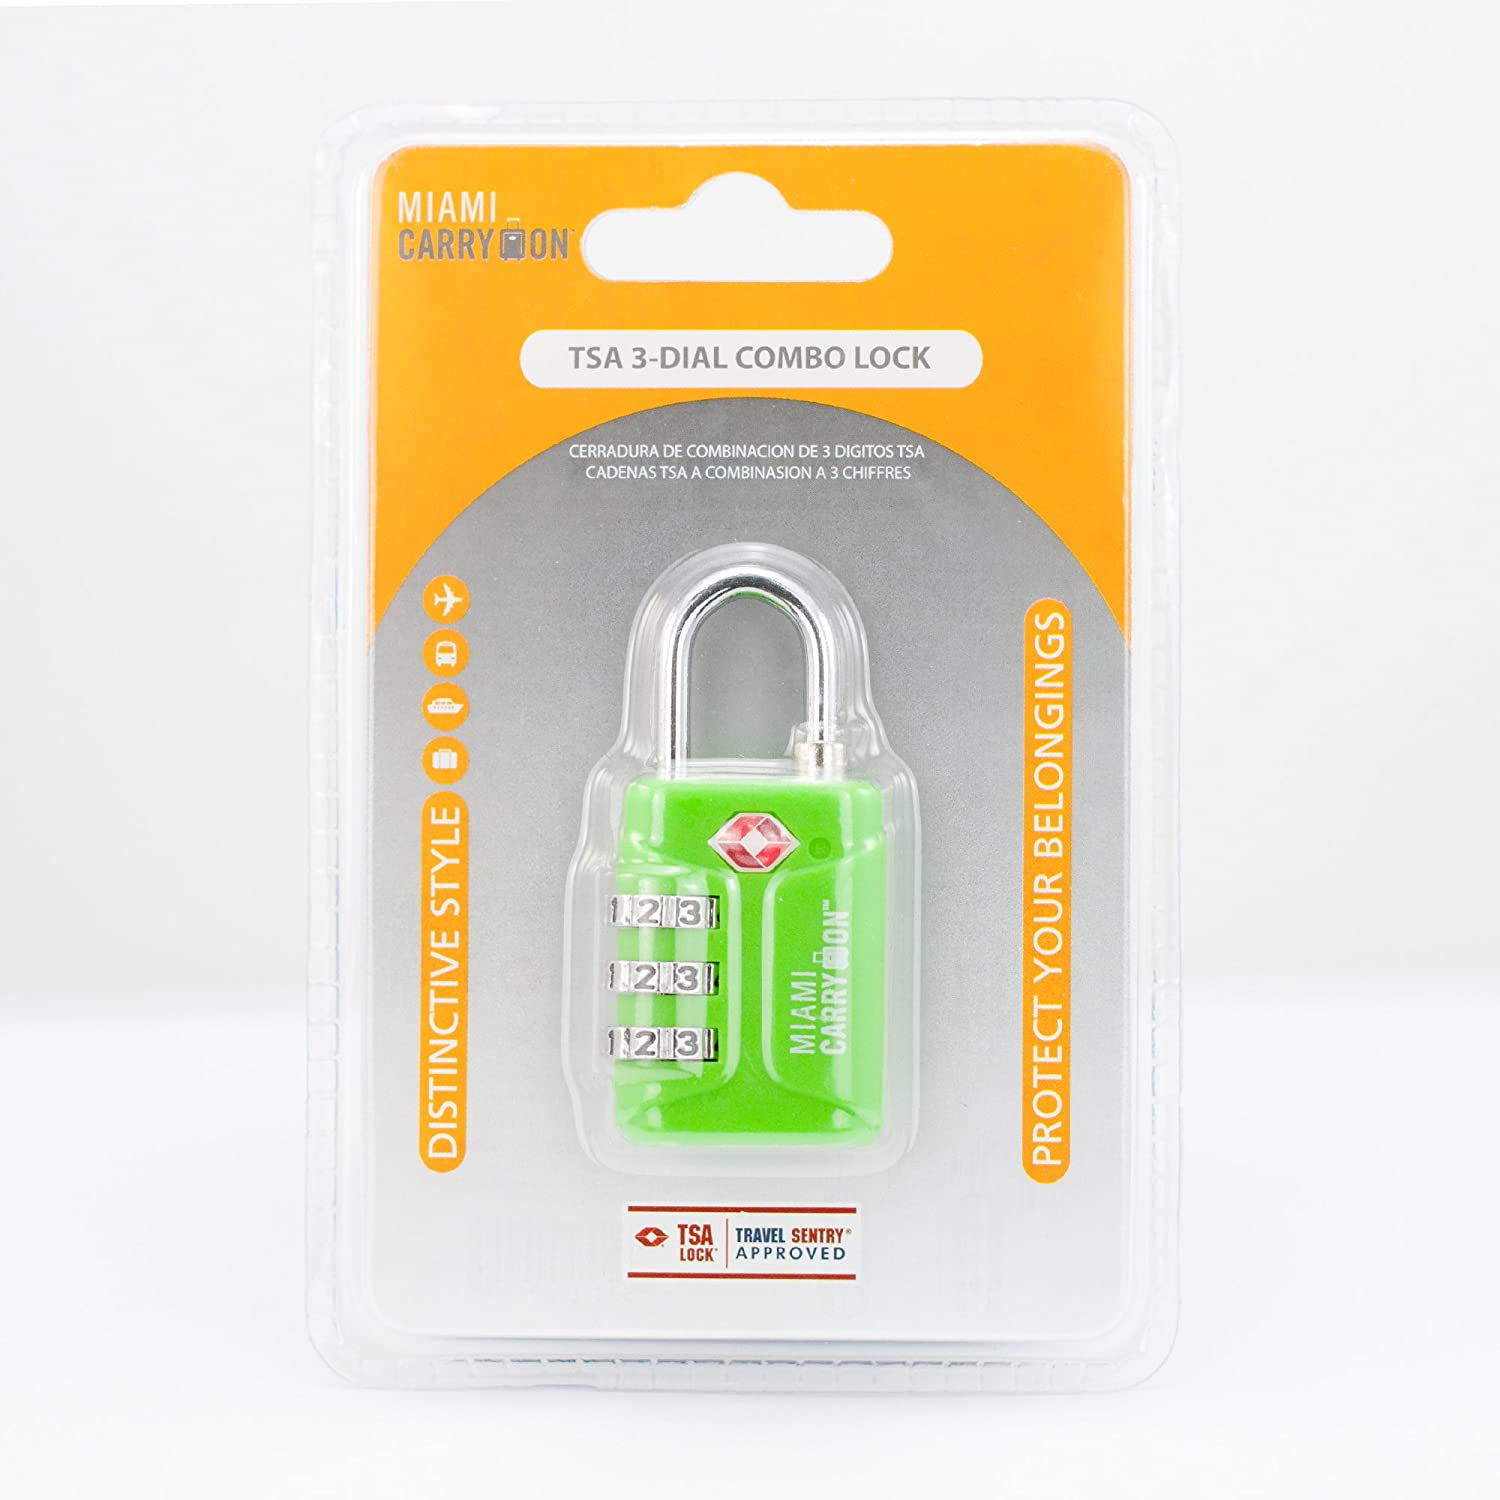 Amazon.com: TSA Combination Padlock - Miami Carry On - Set Your Own Combination TSA Accepted Luggage Lock, 1-3/16 inch Wide - Electric Green (1 Pack): ...